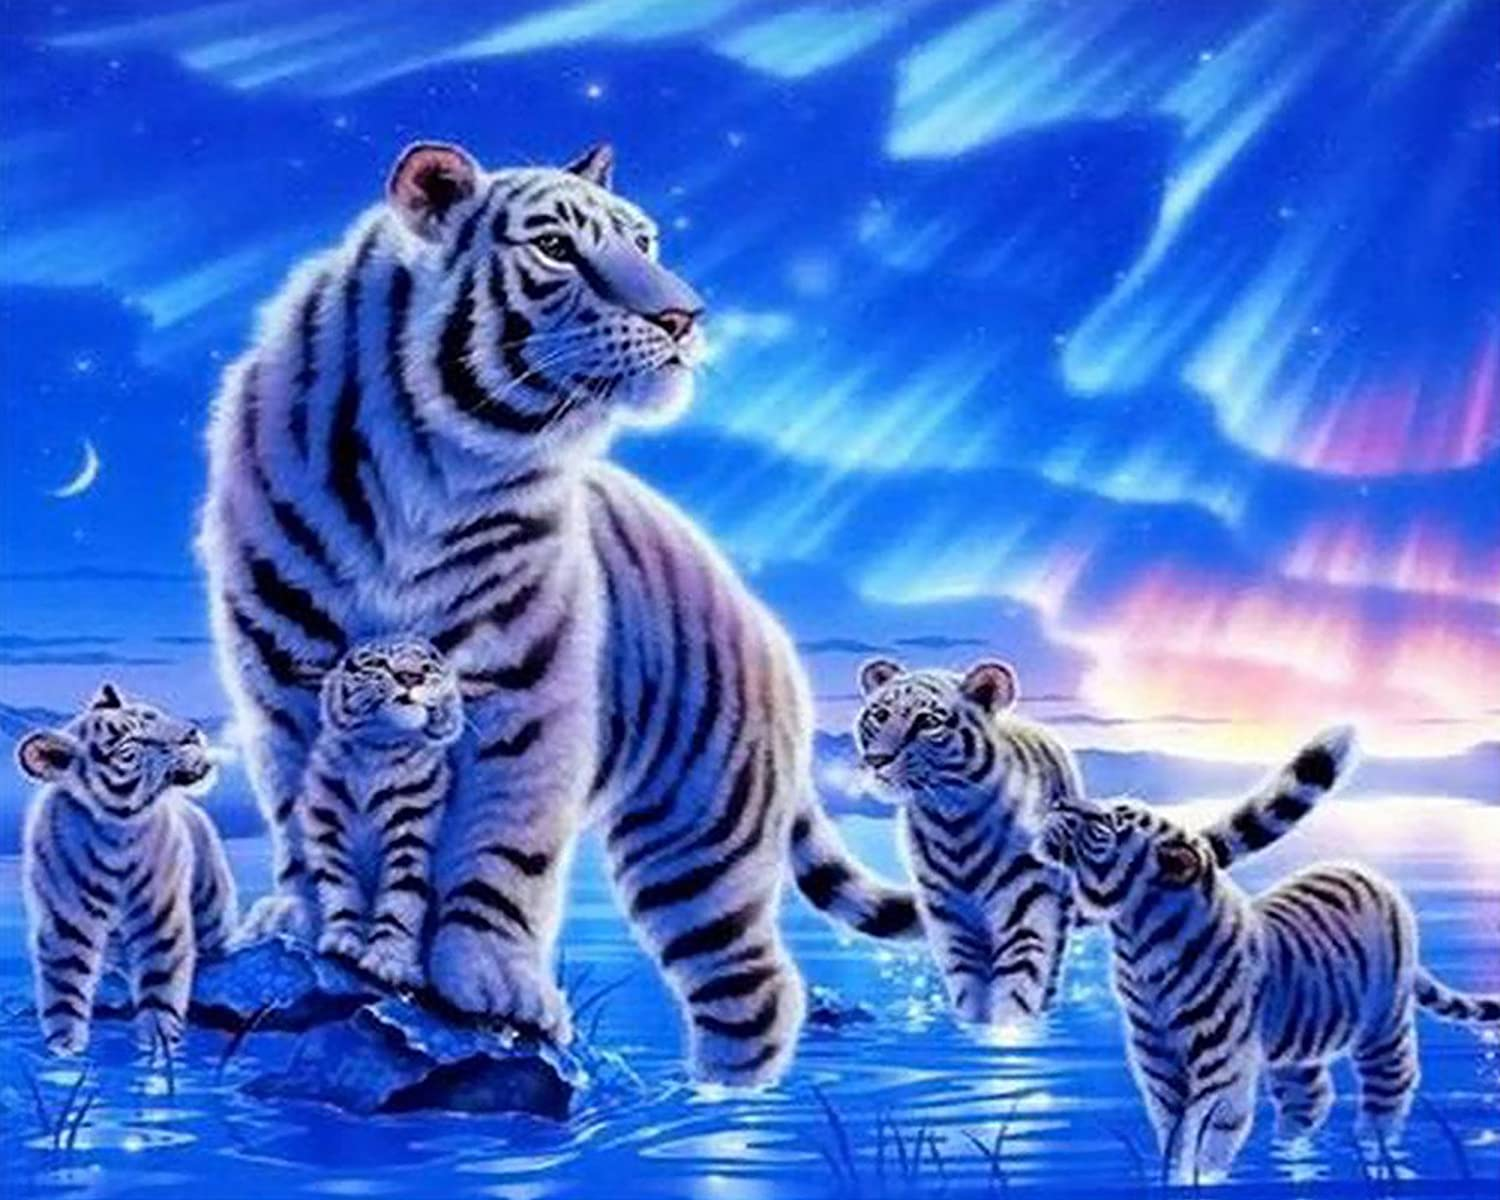 20 inch Ice Tiger 16 DIY Digital Canvas Oil Painting Gift for Adults Kids Paint by Number Kits Home Decorations